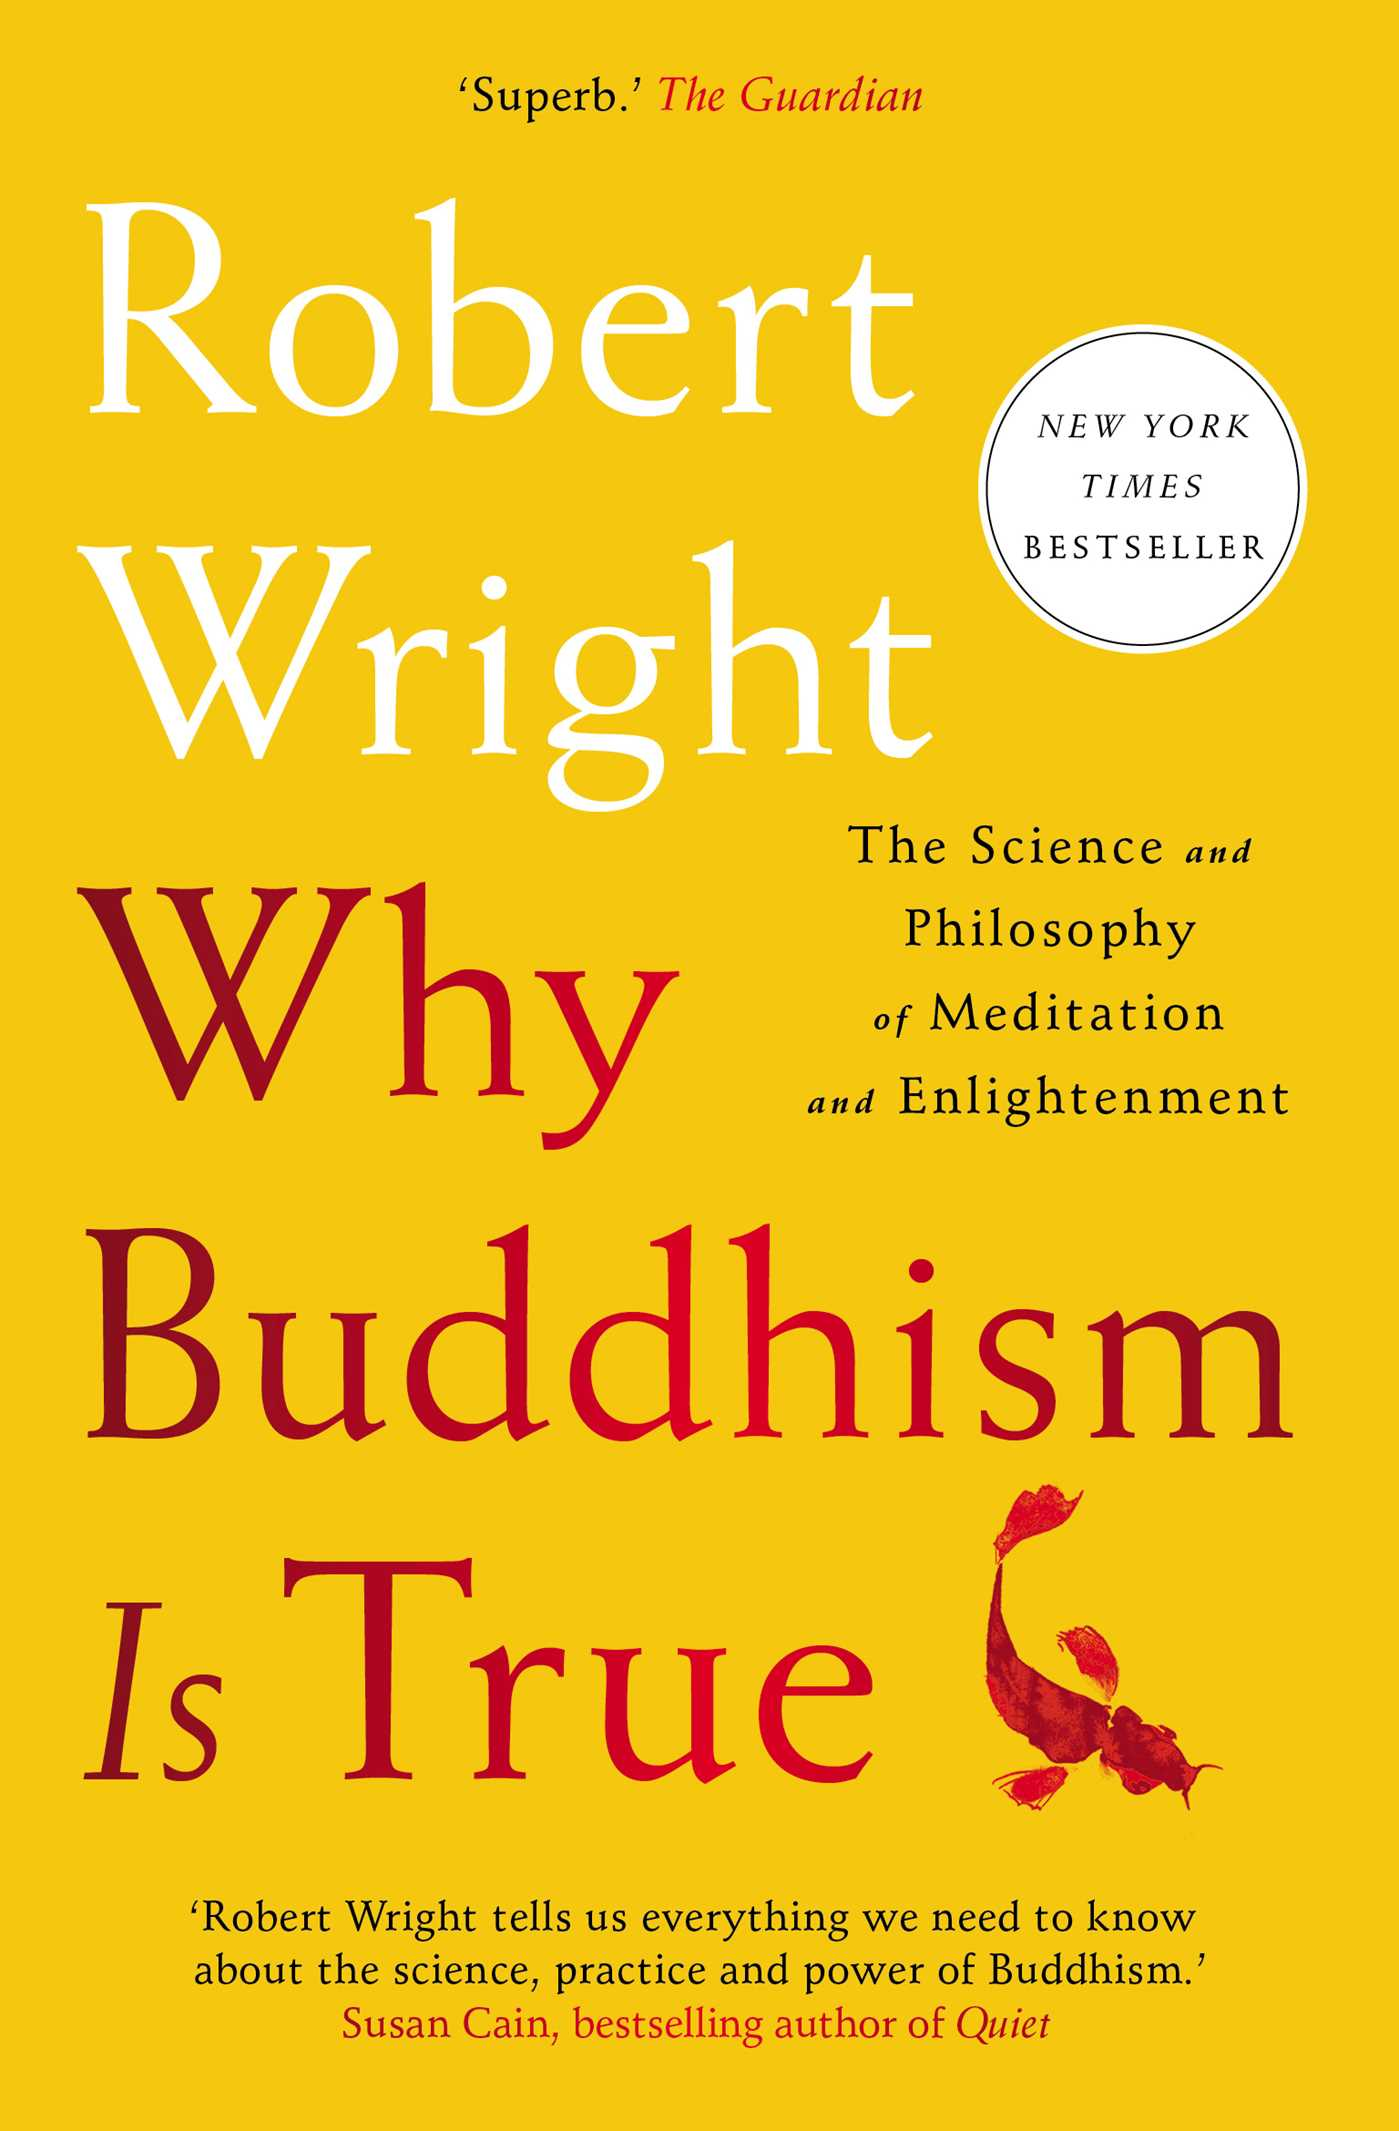 Cover Image of Why Buddhism is True